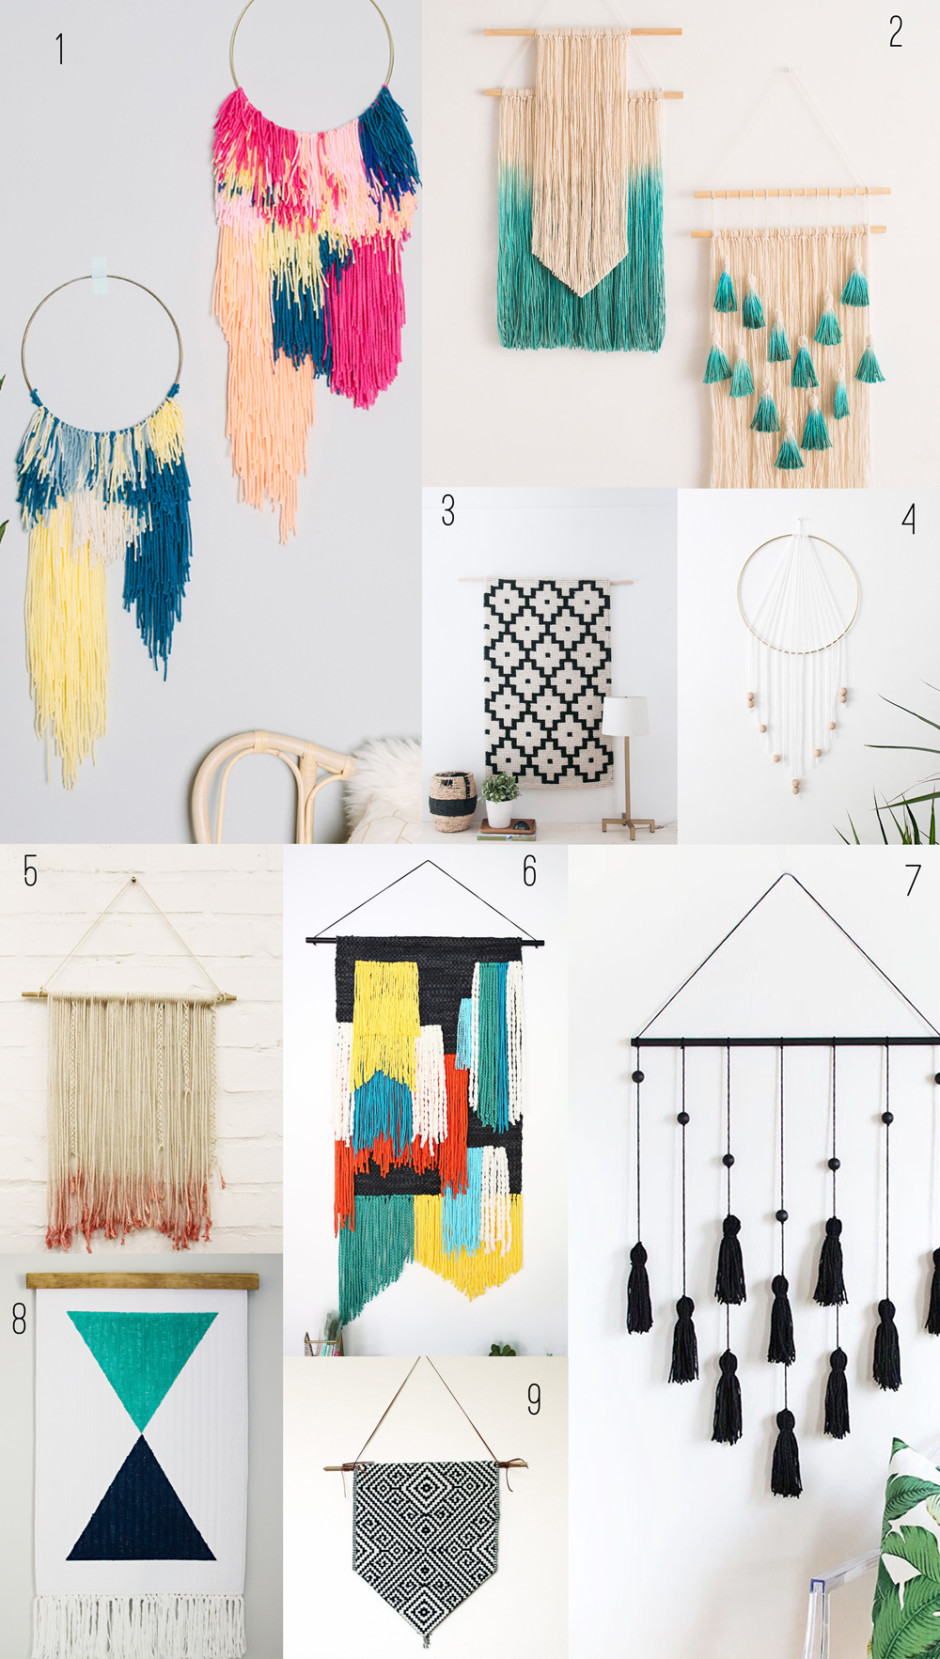 9 Amazing Diy Wall Hangings Tell Love And Partytell Love